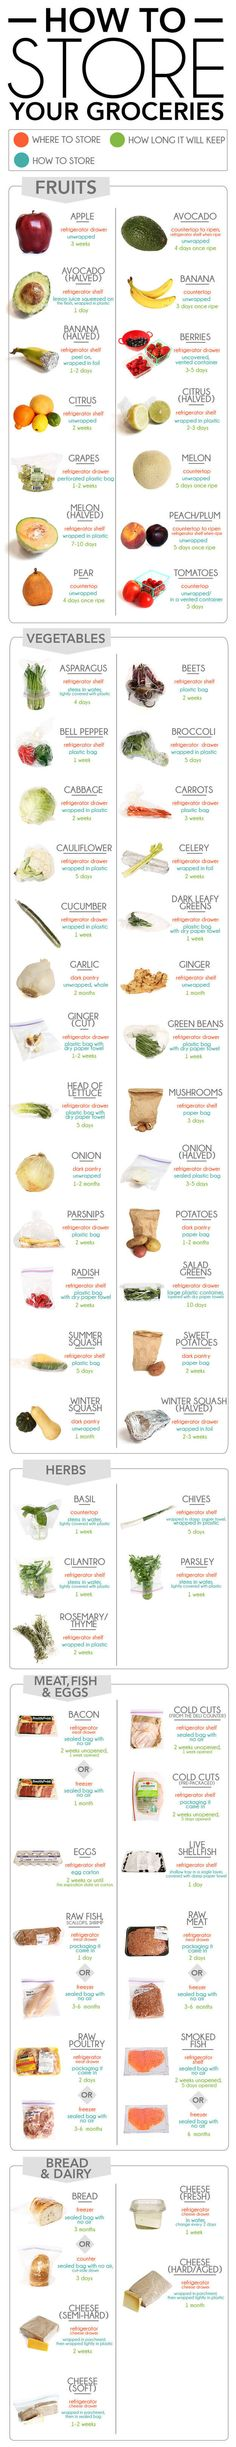 We all need some help eating a little bit better, and these charts will do just that.